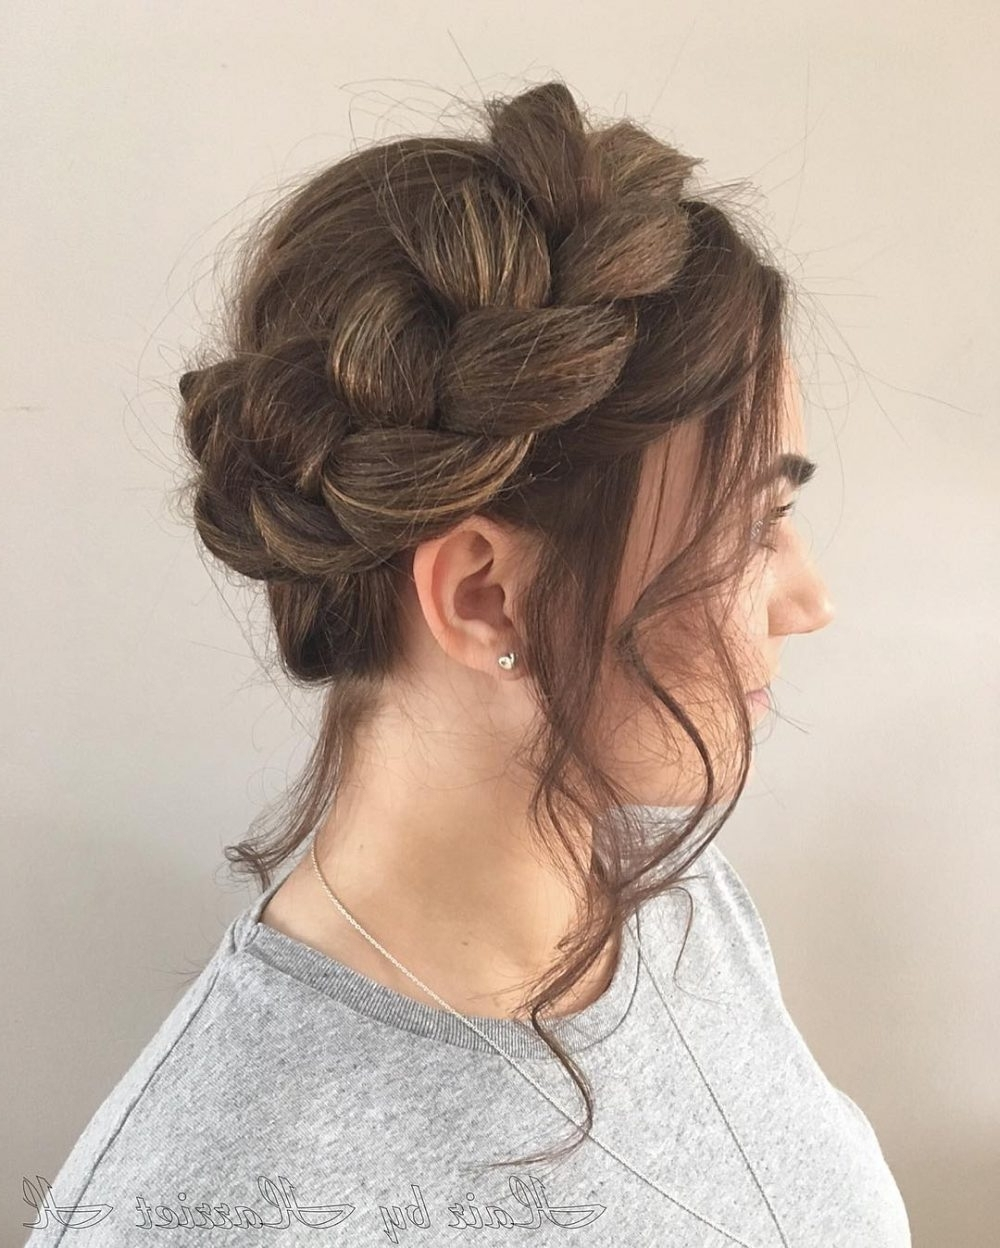 Newest Updo Braided Hairstyles Intended For 28 Gorgeous Braided Updo Ideas For (View 9 of 15)